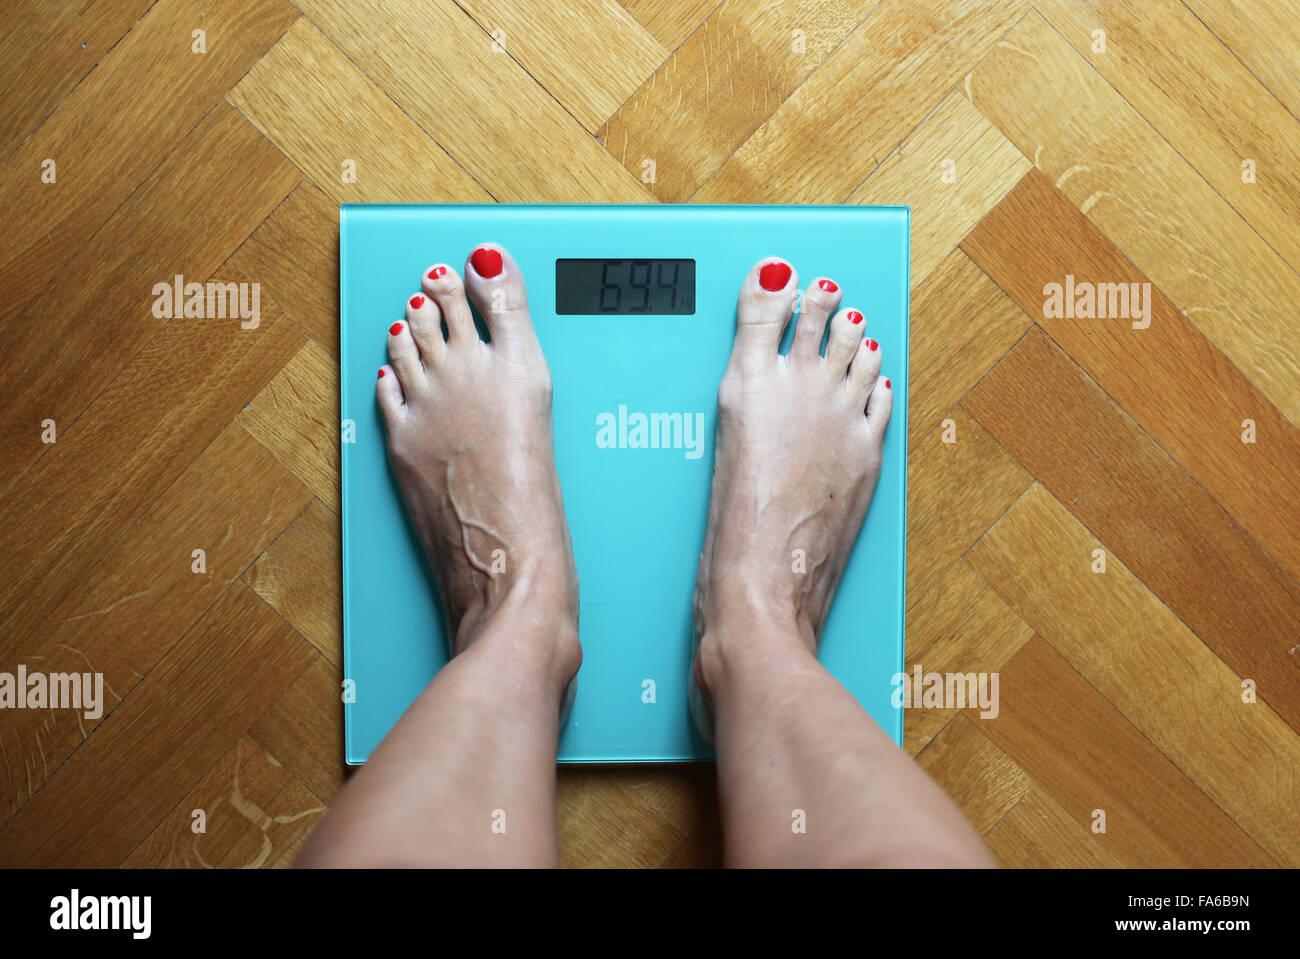 Woman standing on weighing scales - Stock Image